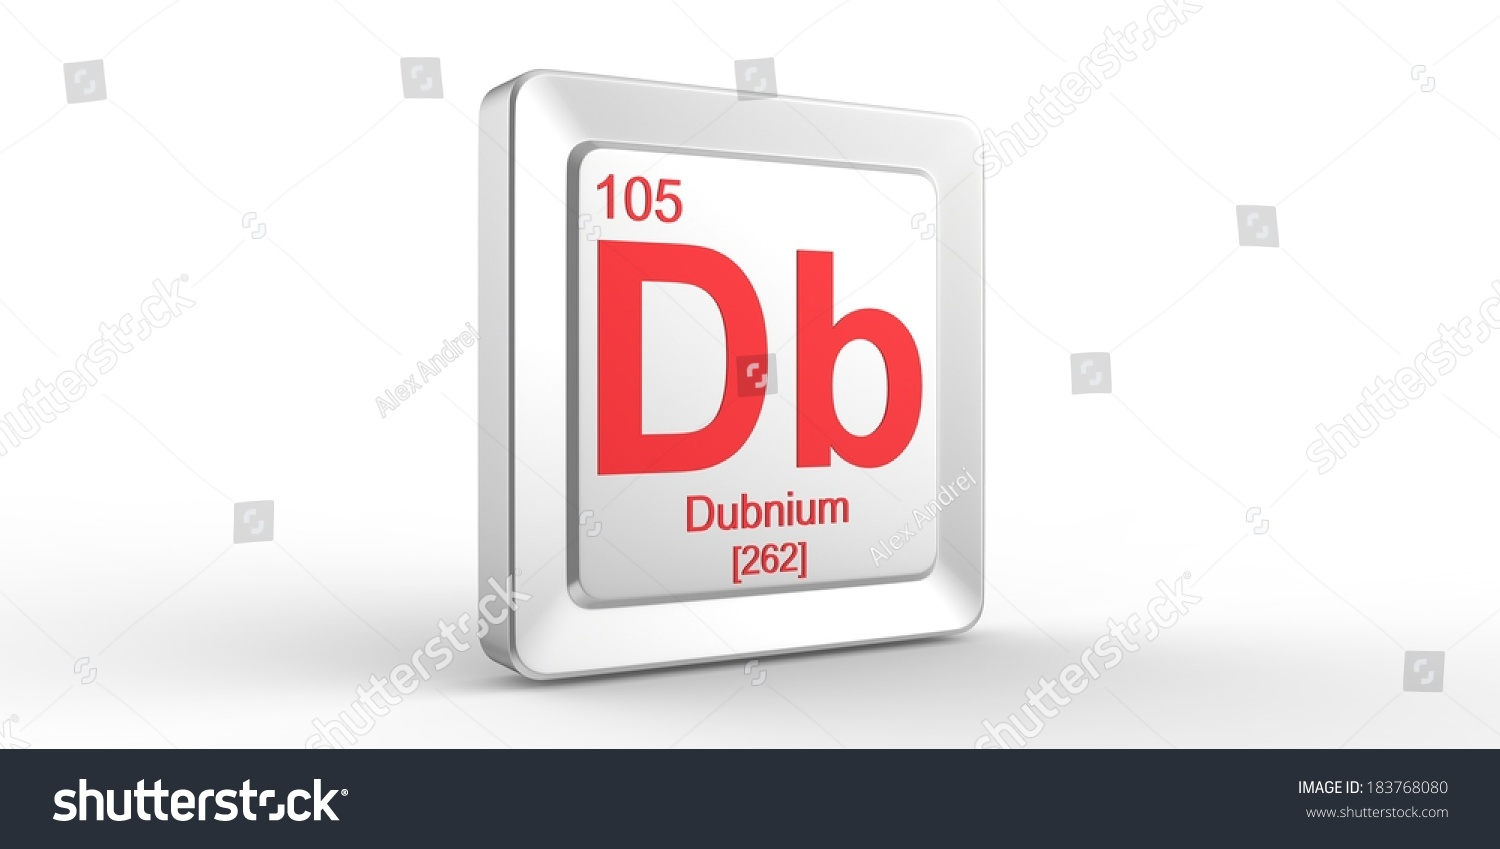 Periodic table db gallery periodic table images periodic table db image collections periodic table images periodic table db choice image periodic table images gamestrikefo Images